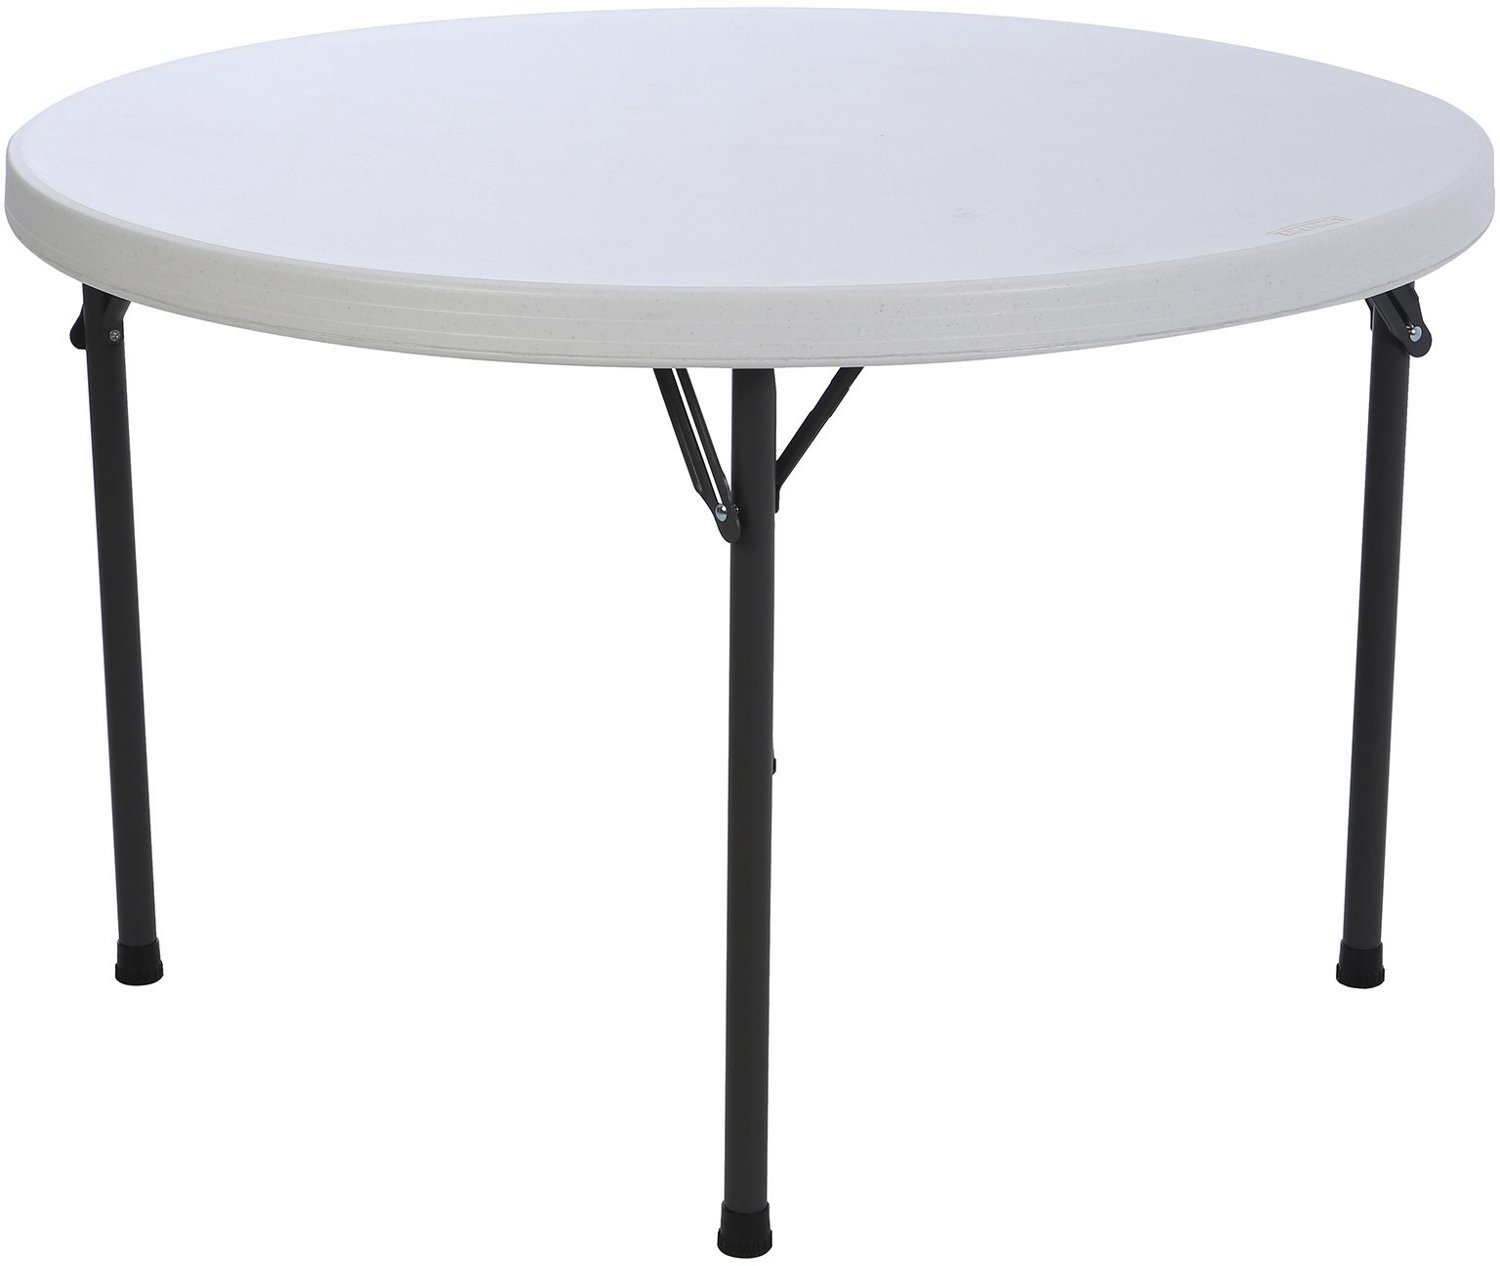 Lifetime 46 in Round Commercial Folding Table - view number 2